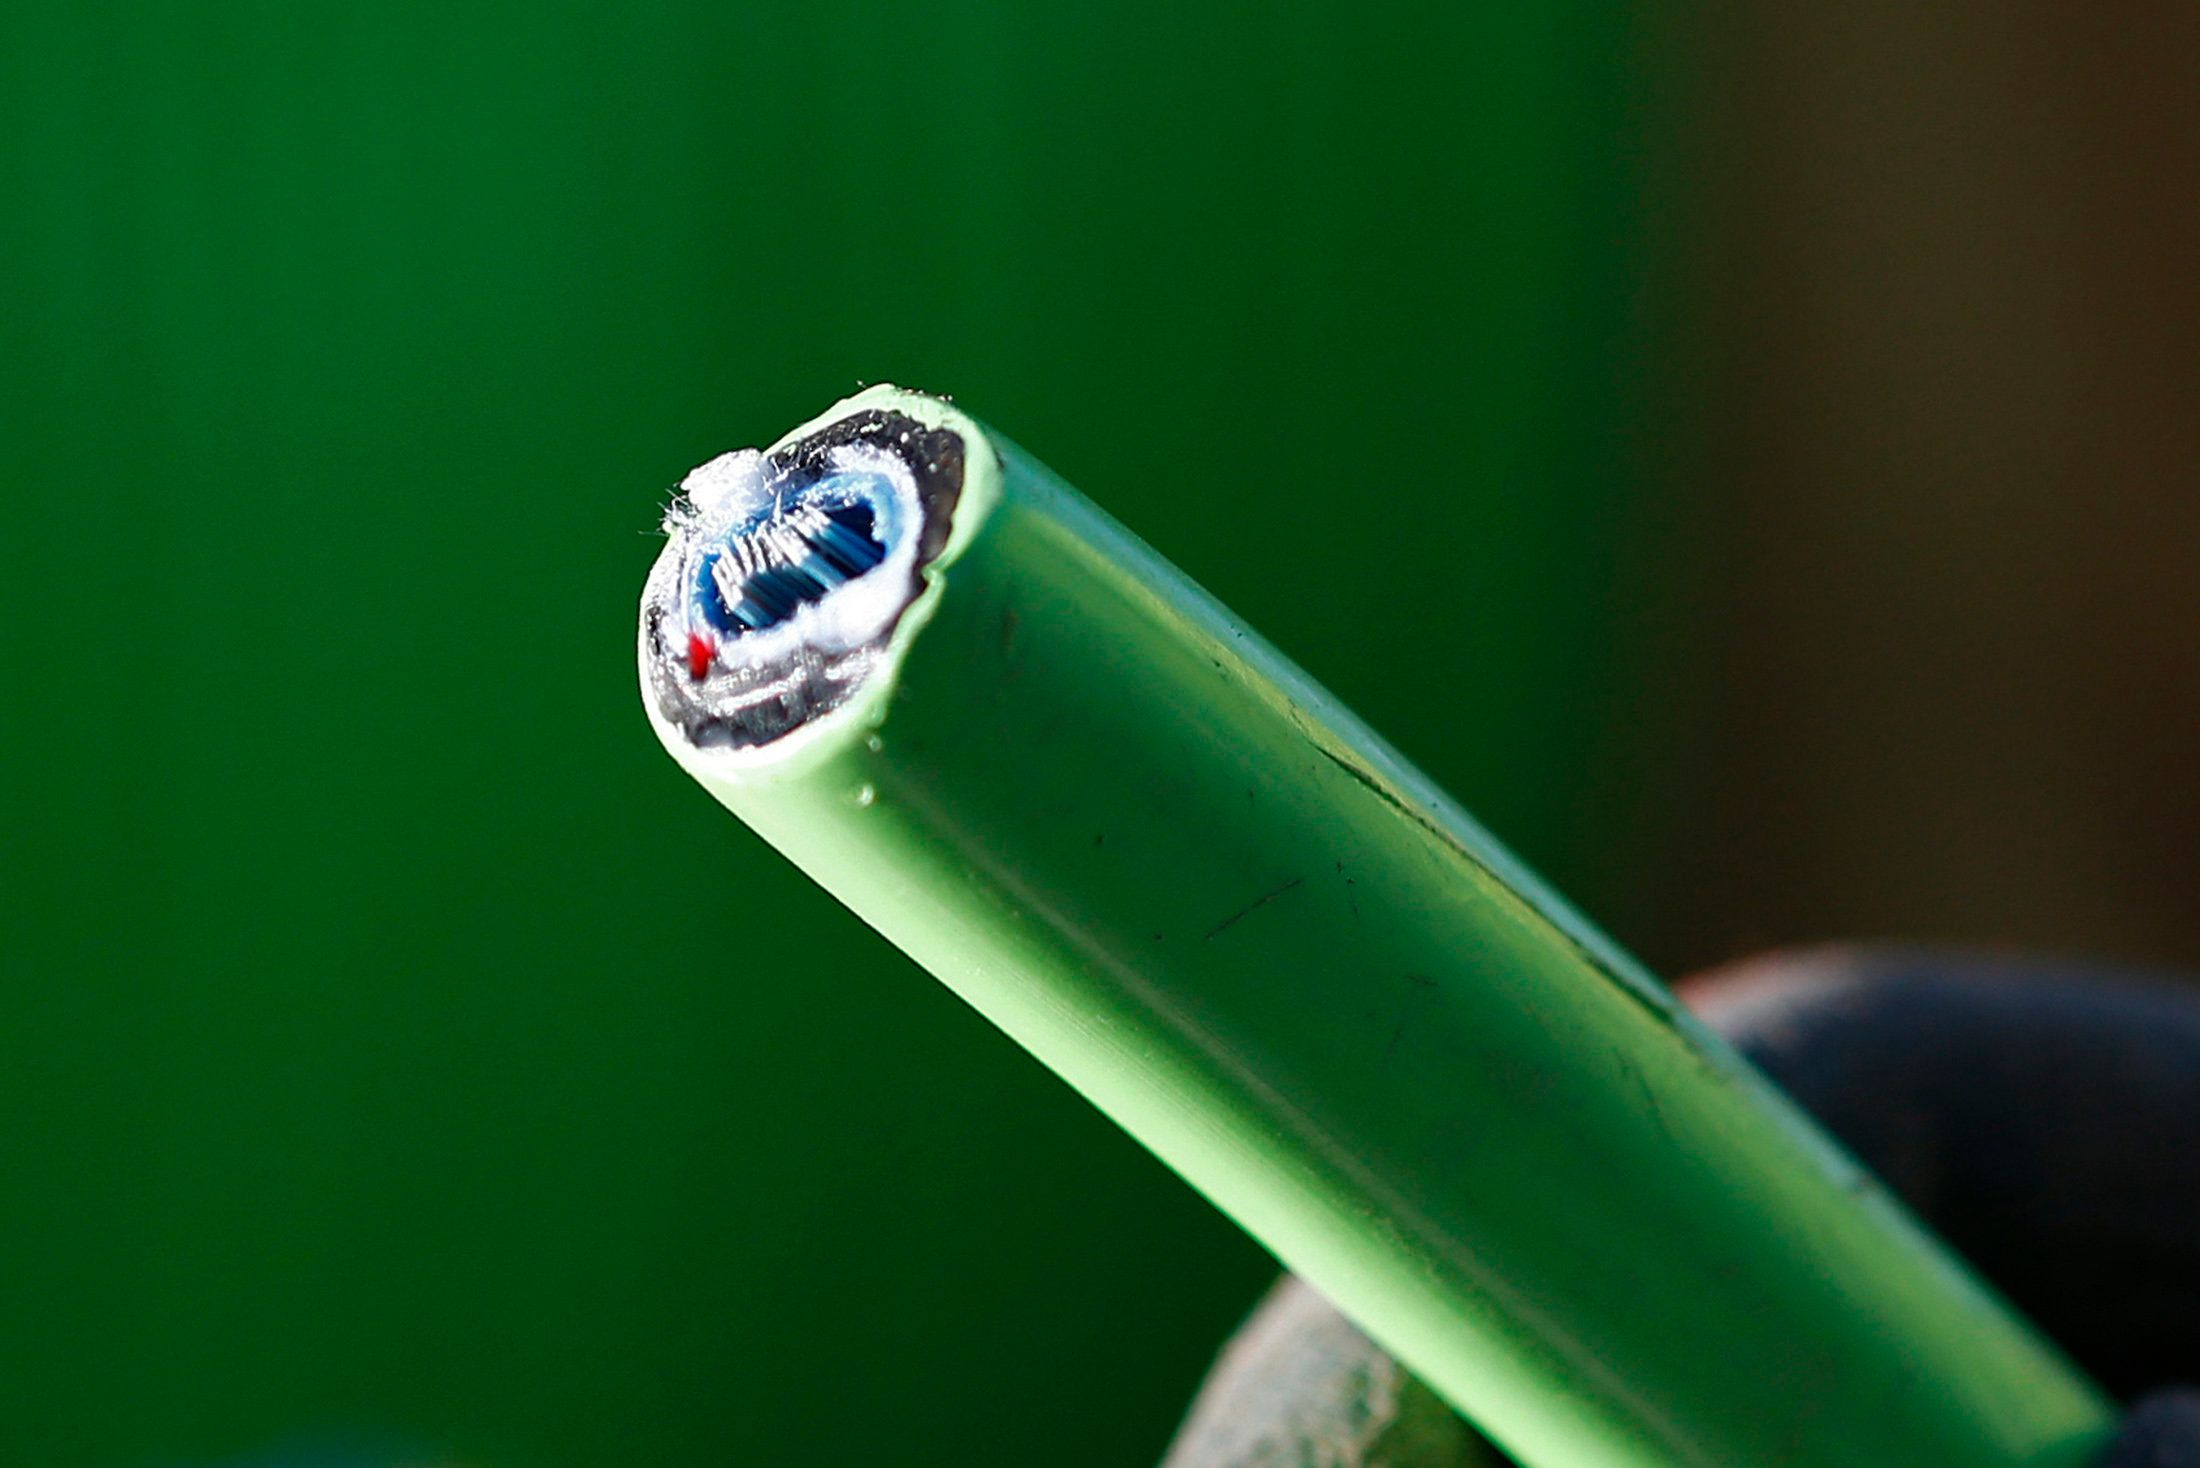 Full Fibre Broadband Is Coming, Here's Why You Should